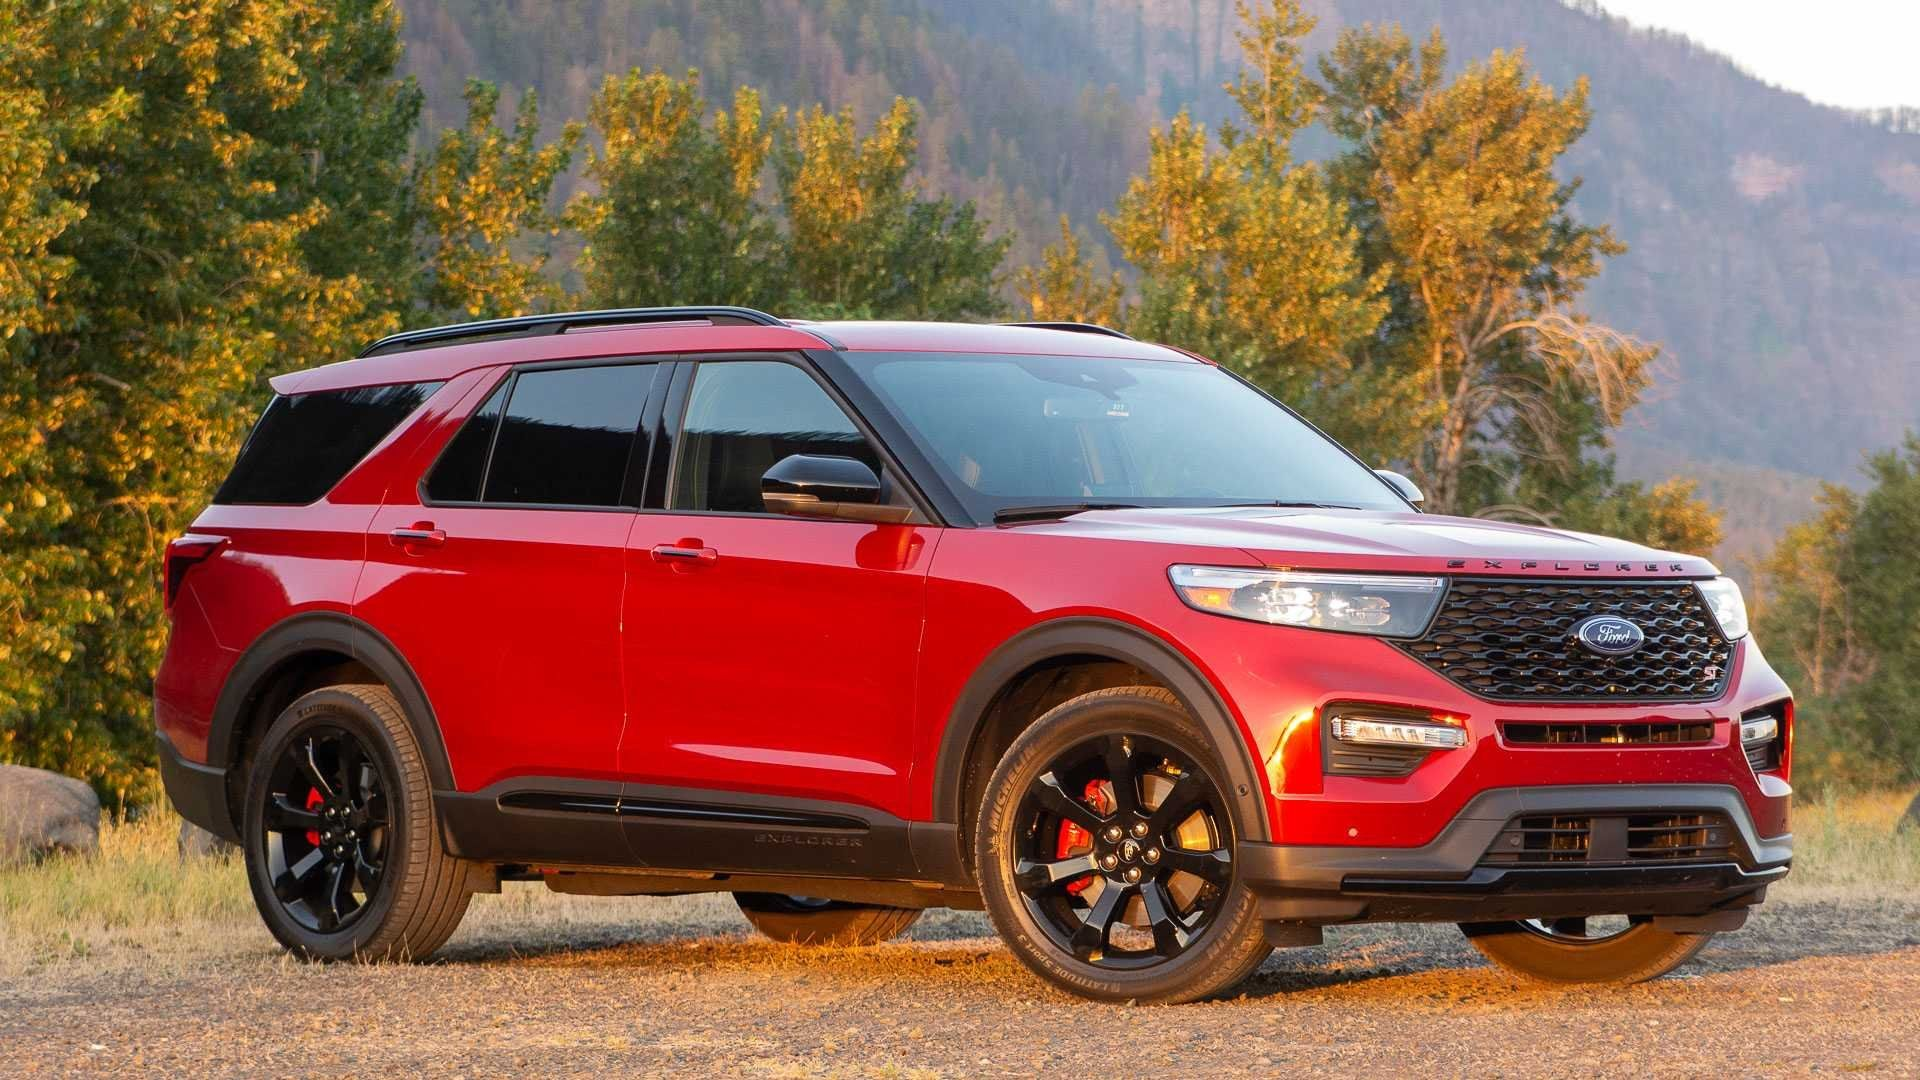 2020 Ford Svt Bronco Raptor Wallpaper In 2020 Ford Explorer